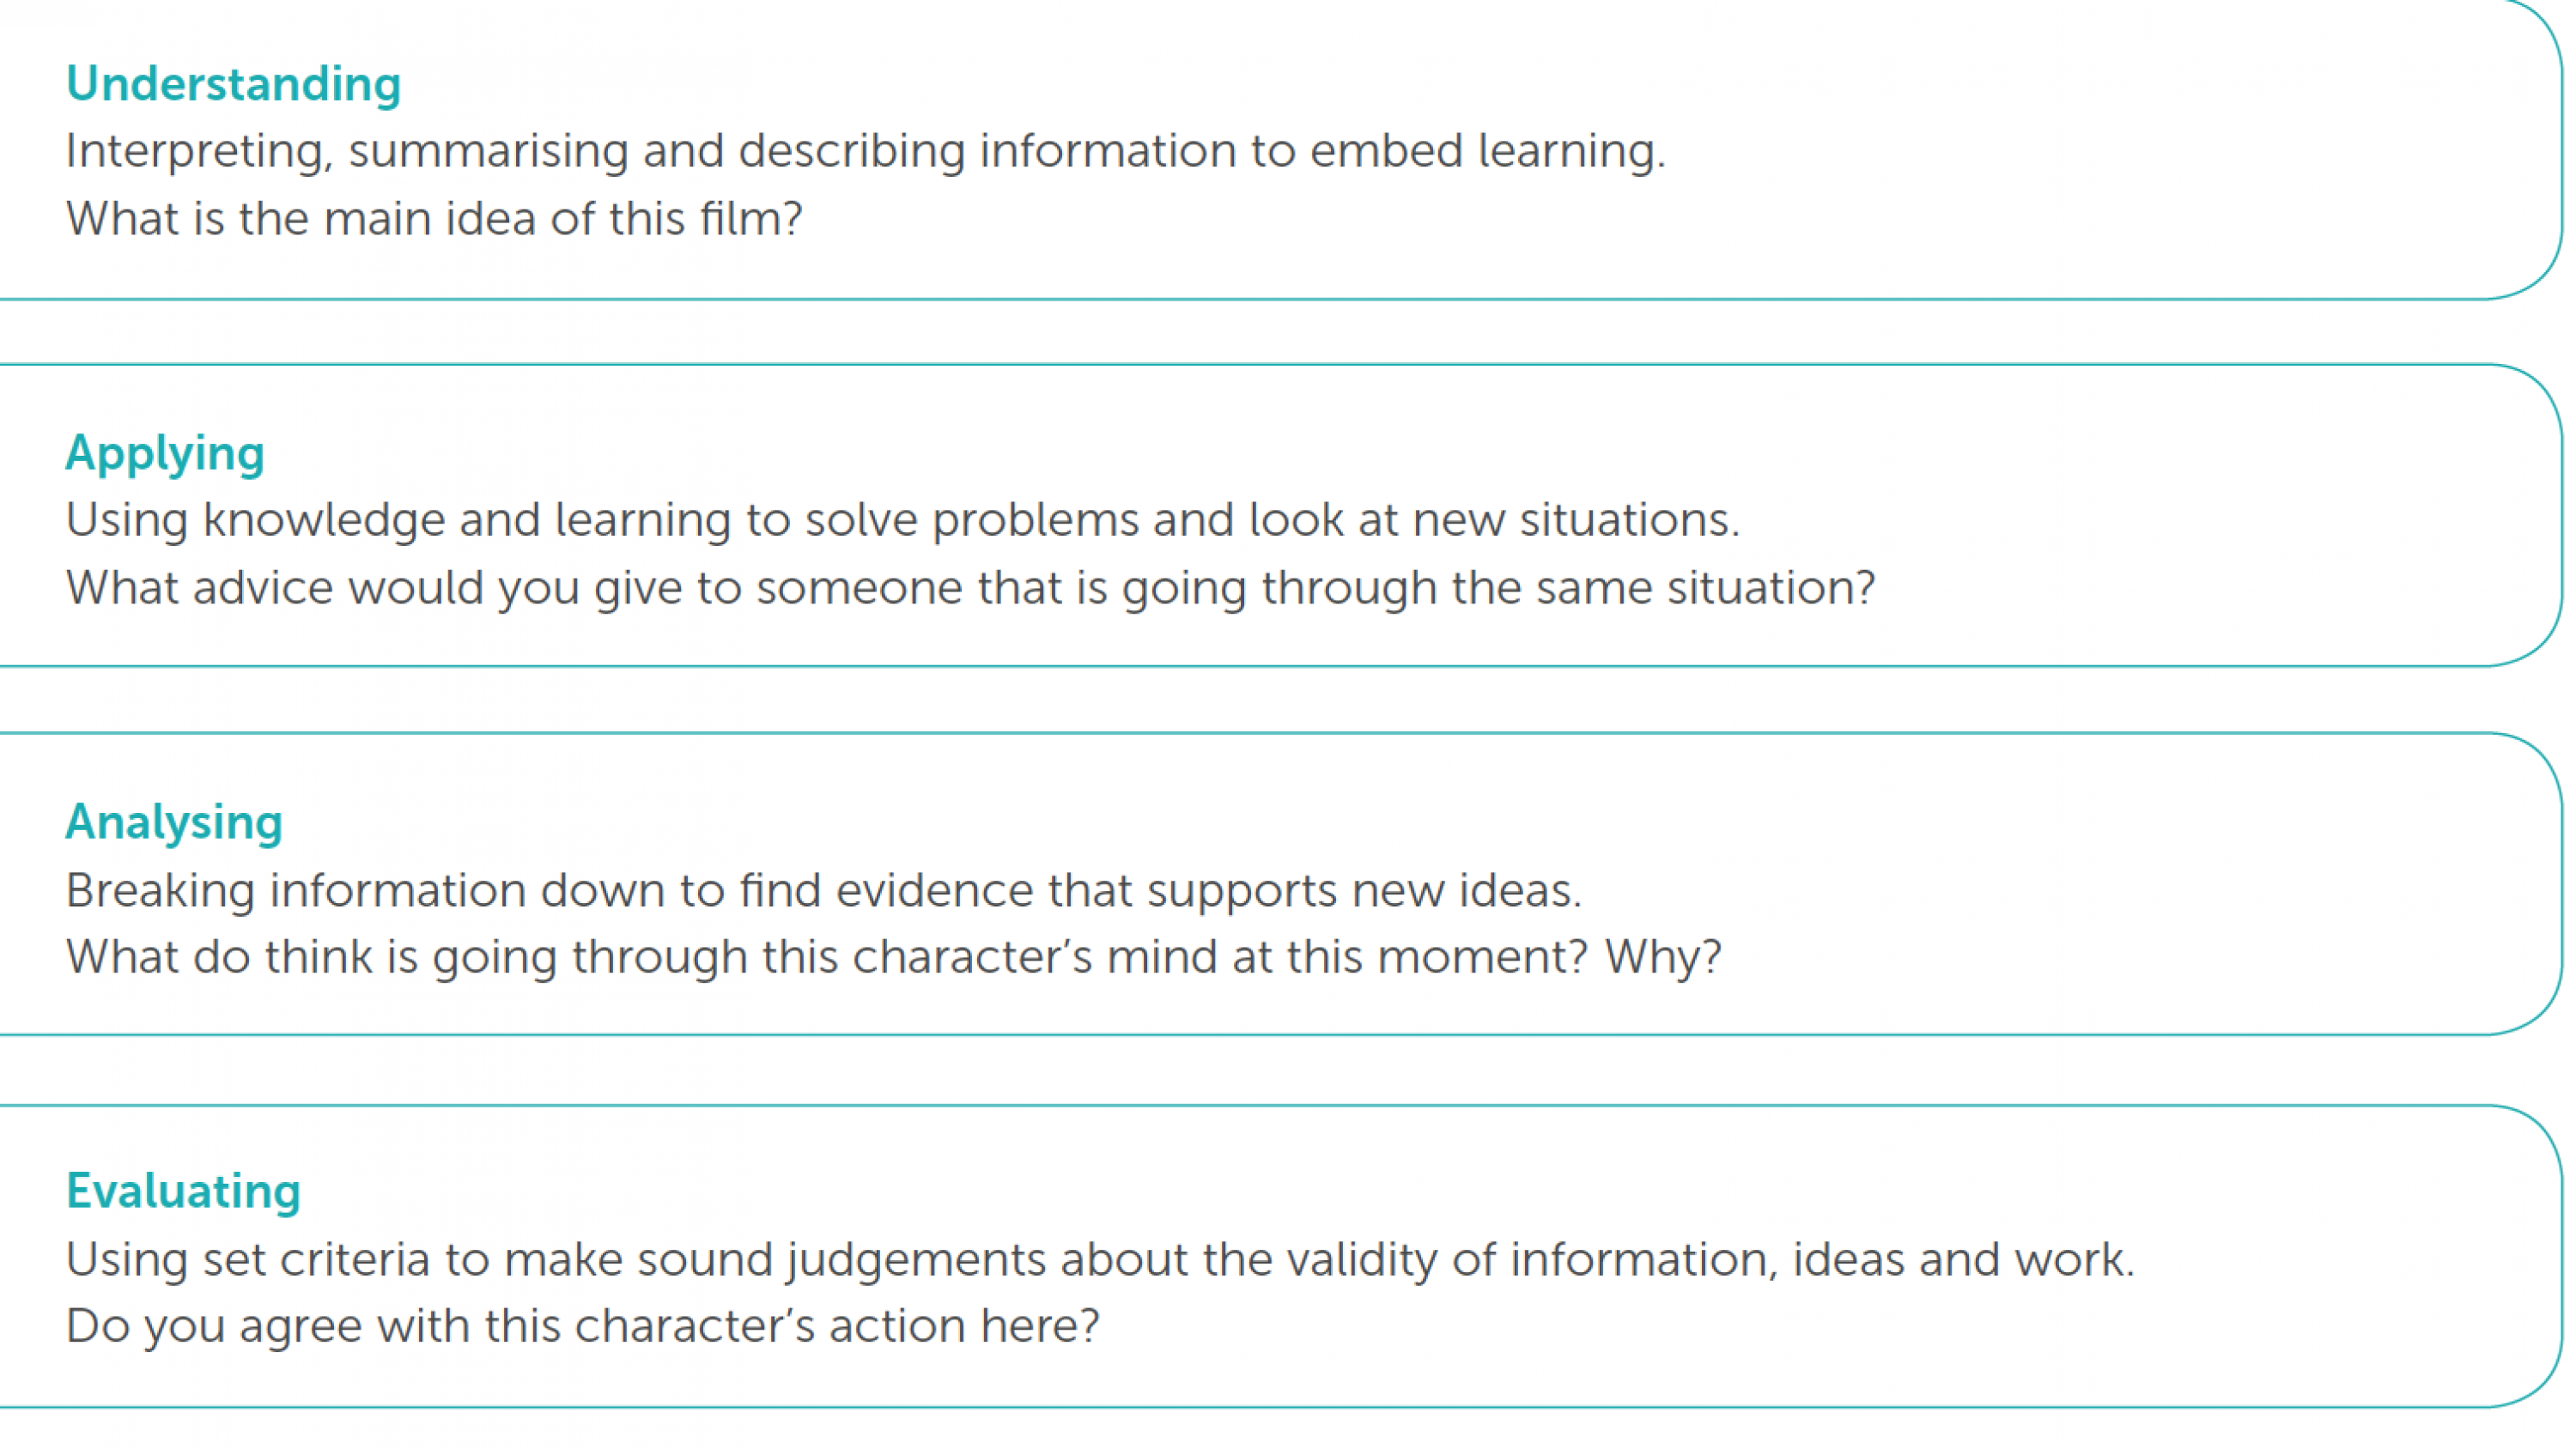 Examples of question types from remembering to creation.